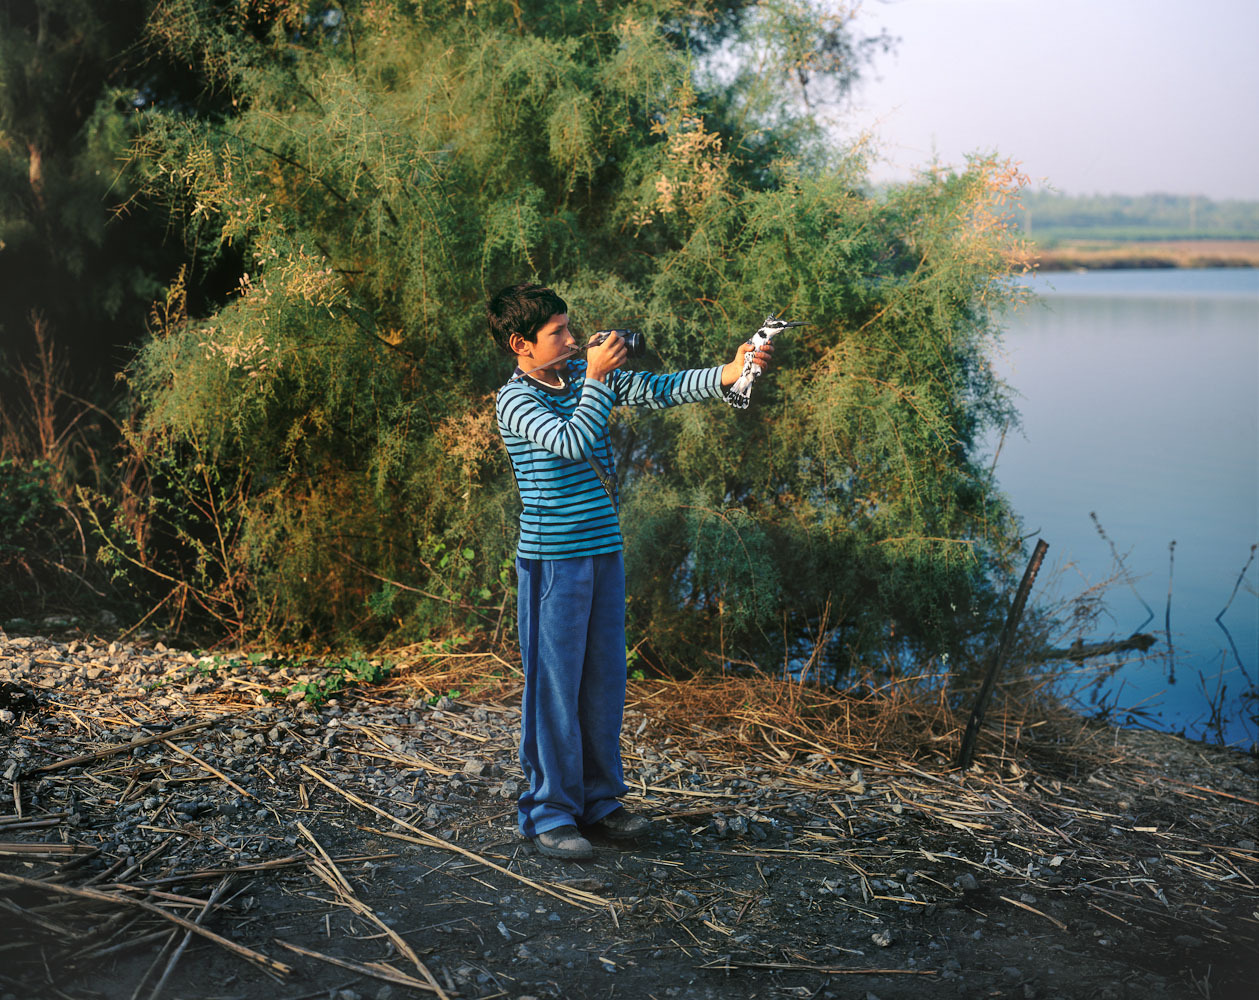 Zohar With Pied Kingfisher, 2010 Photographer Yaakov Israel set out to document the people and landscapes of the country that shares his name. His new book tells a story of daily life in a land with a deep history and uncertain future. See more photos here.